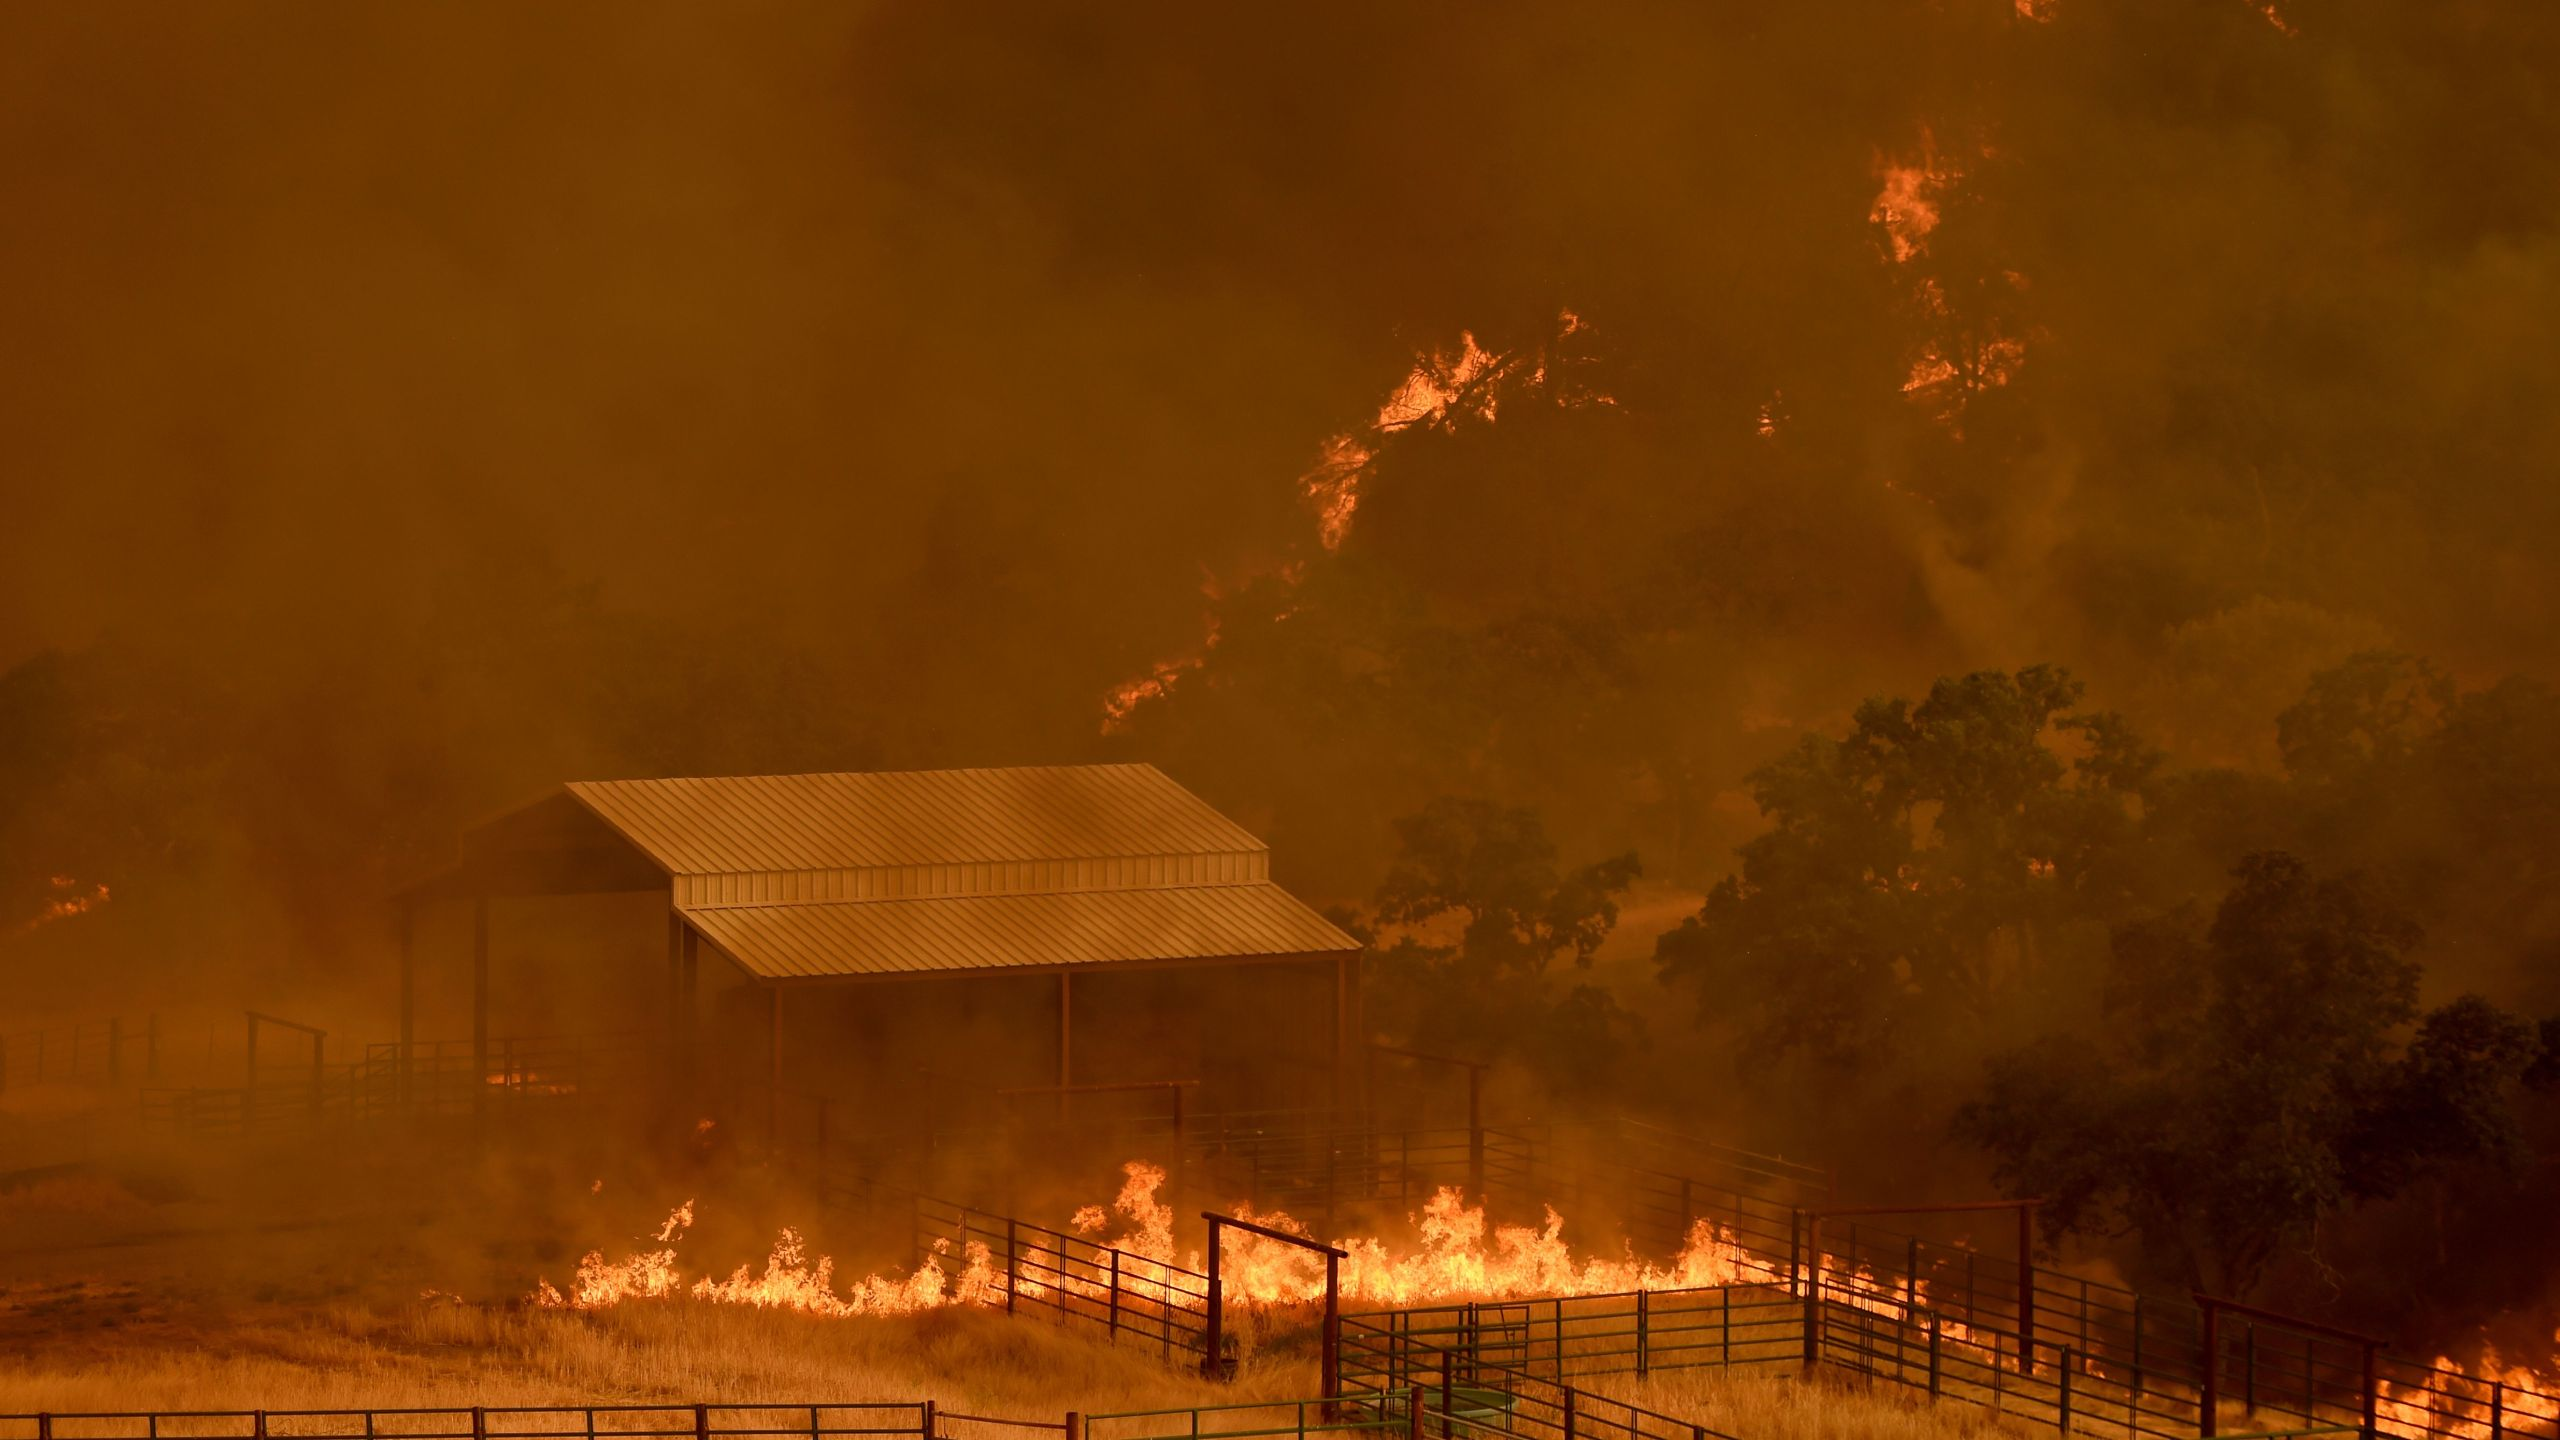 Flames from a wildfire in Yolo County move through a property in Guinda, California, on July 1, 2018. (Credit: JOSH EDELSON/AFP/Getty Images)